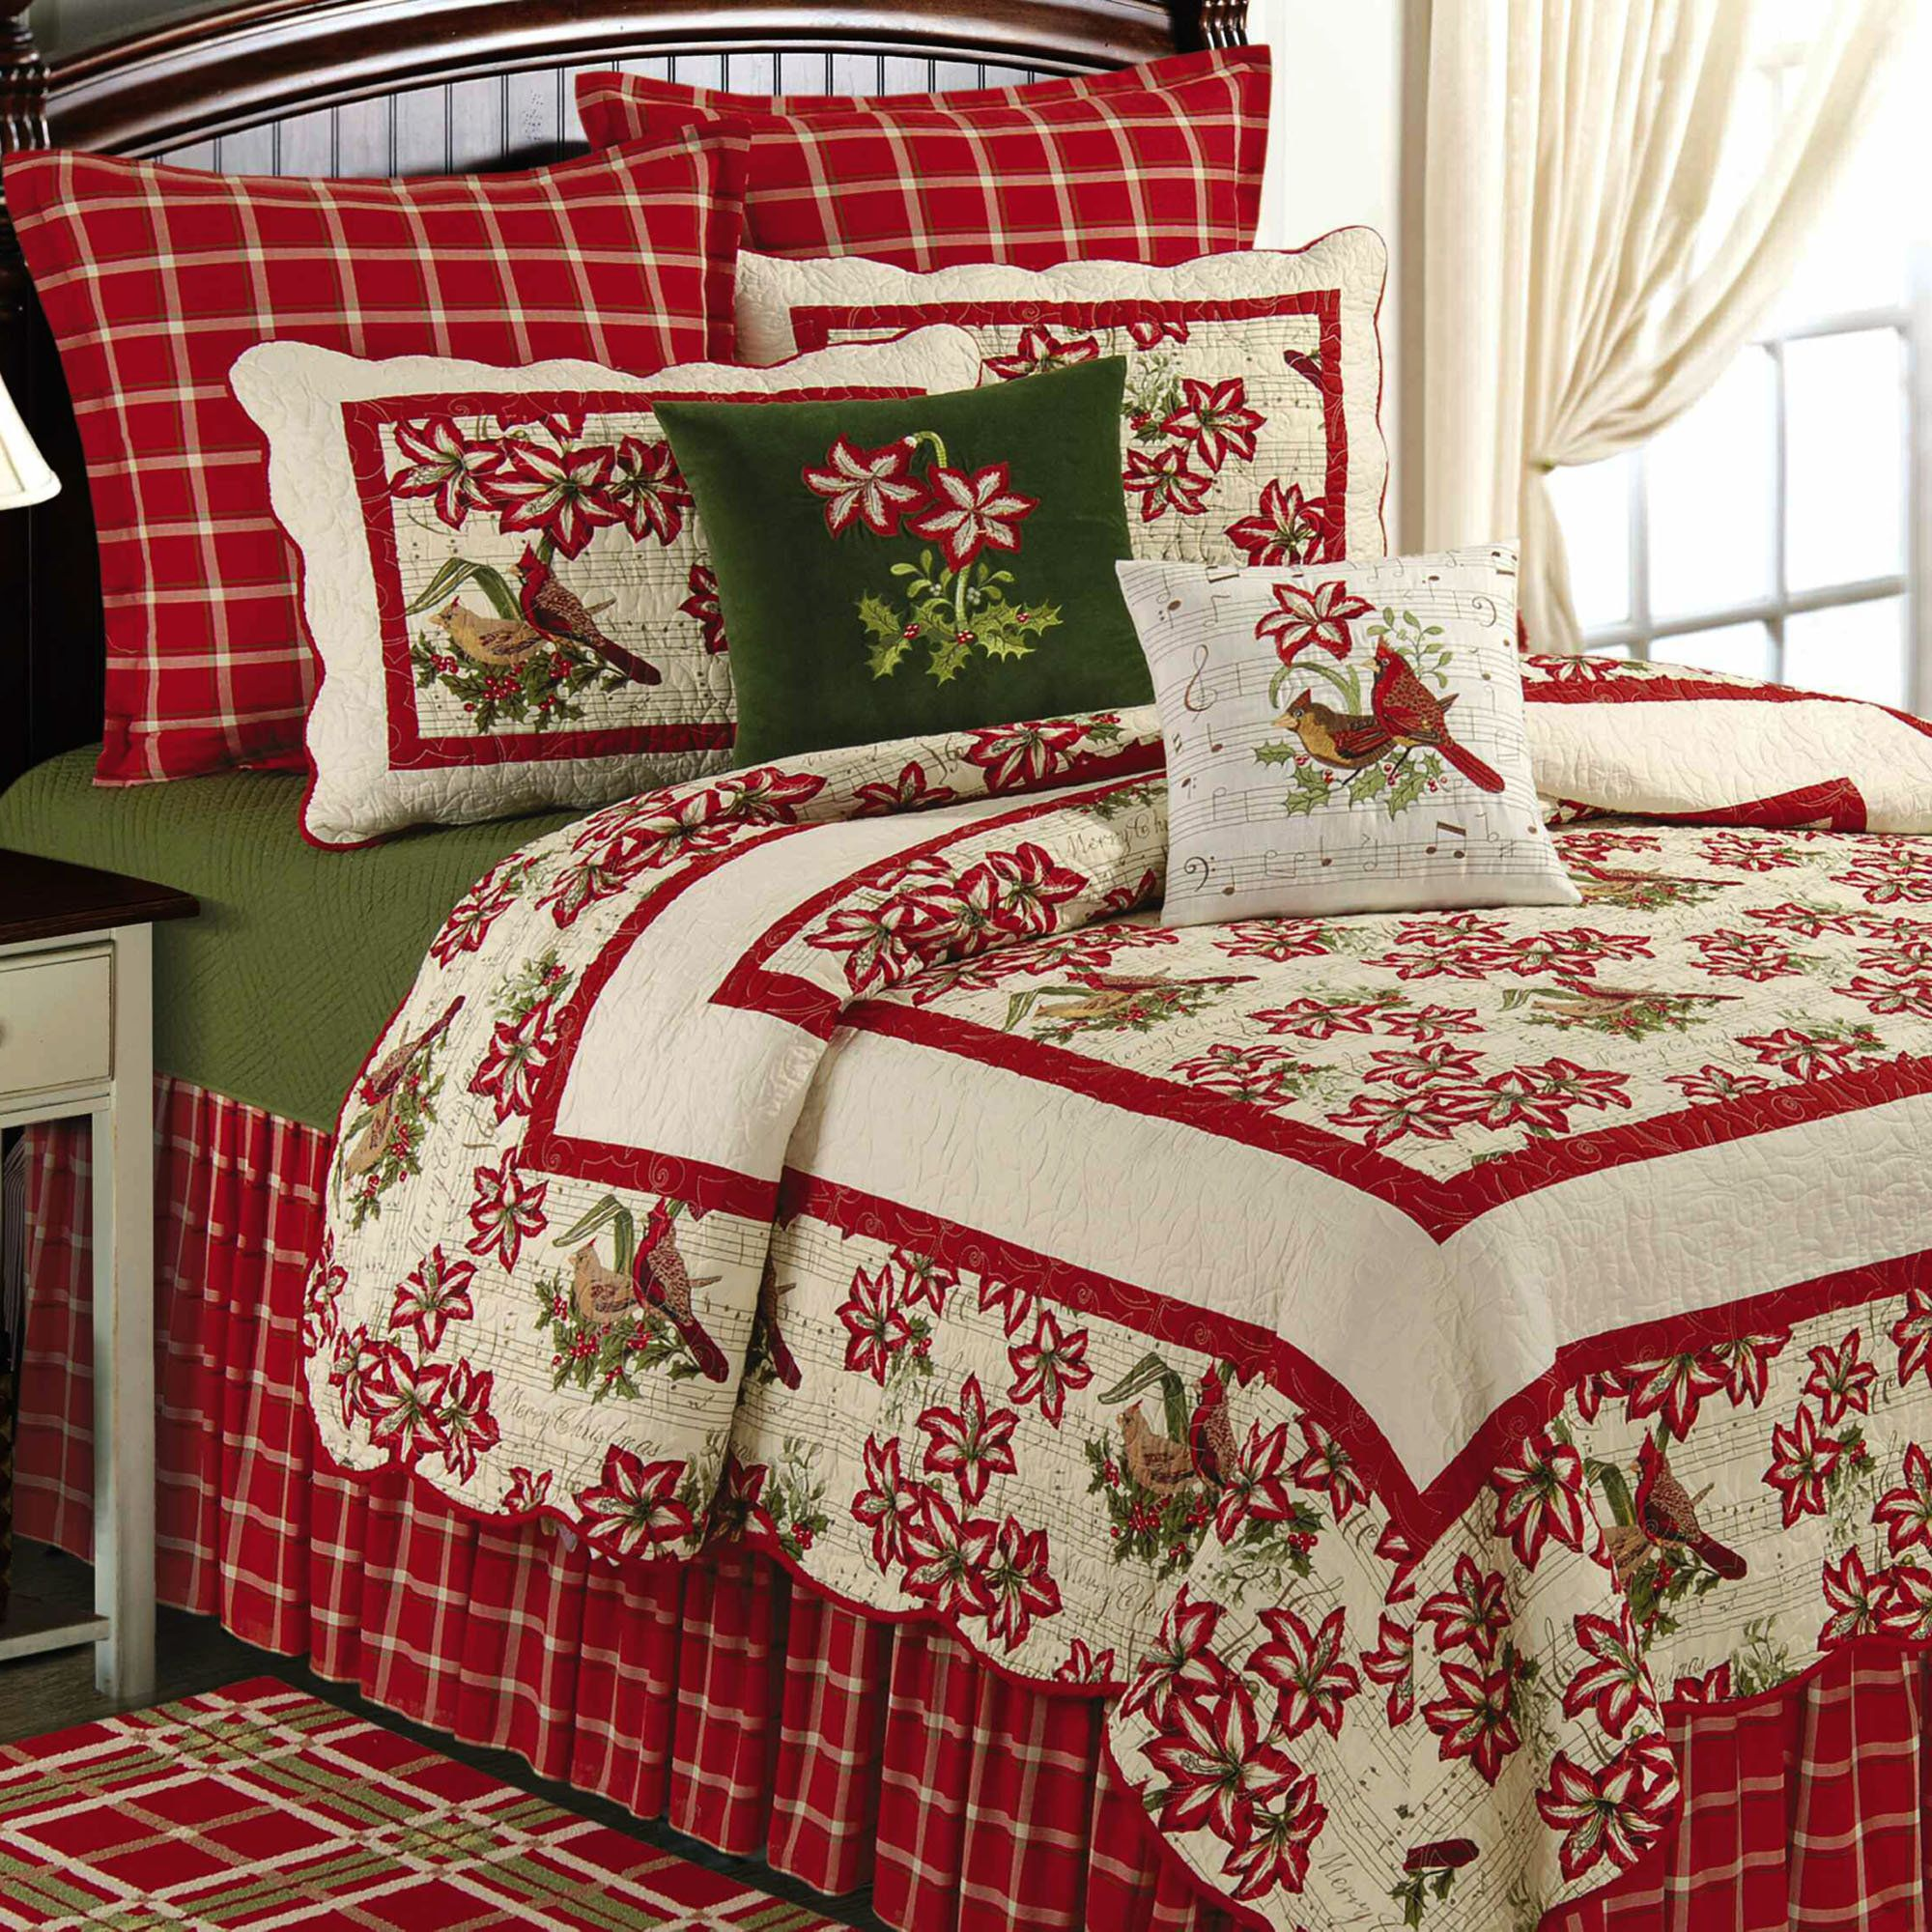 a queen uncategorized bag black in white red quilt and sets for files popular bedding bed picture gray trends best